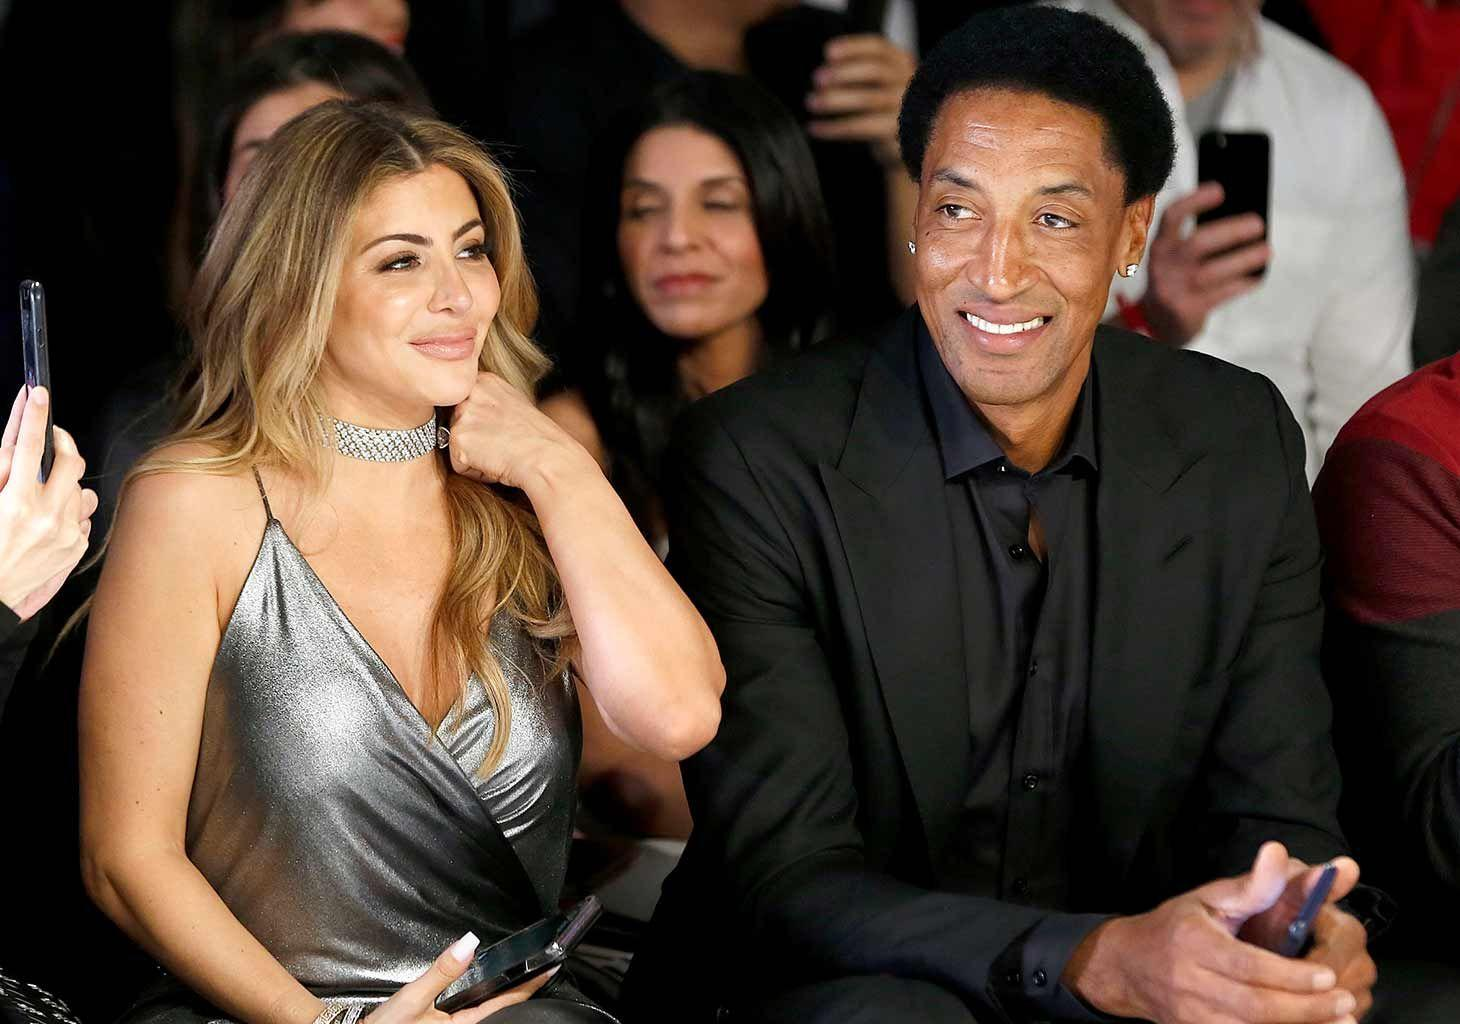 Larsa Pippen Responds To The Accusations She Cheated On Scottie!